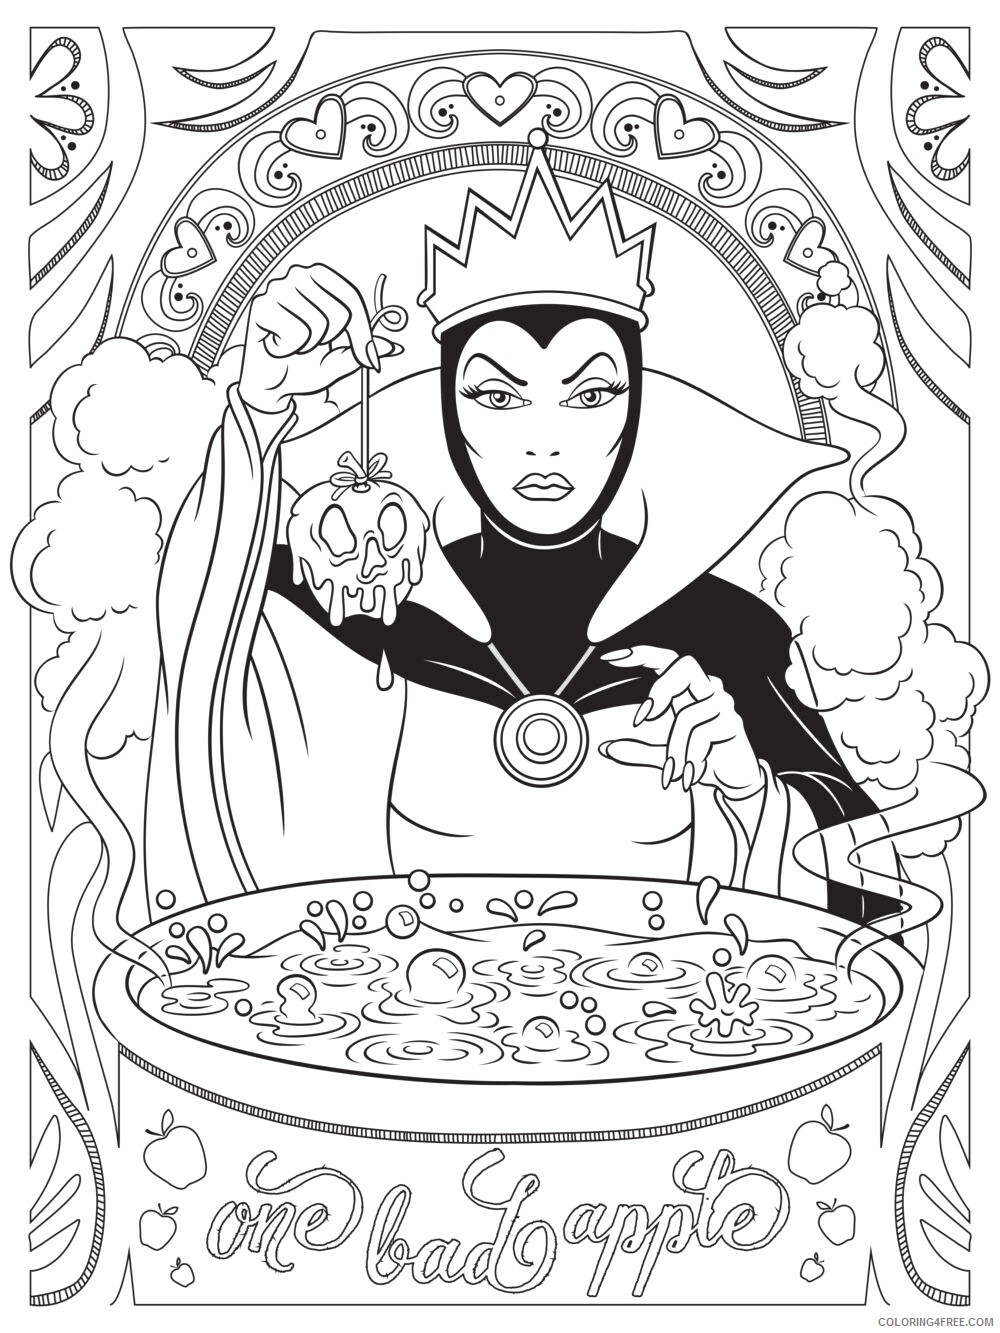 Adult Coloring Pages Disney Villian for Adults Printable 2020 017 Coloring4free